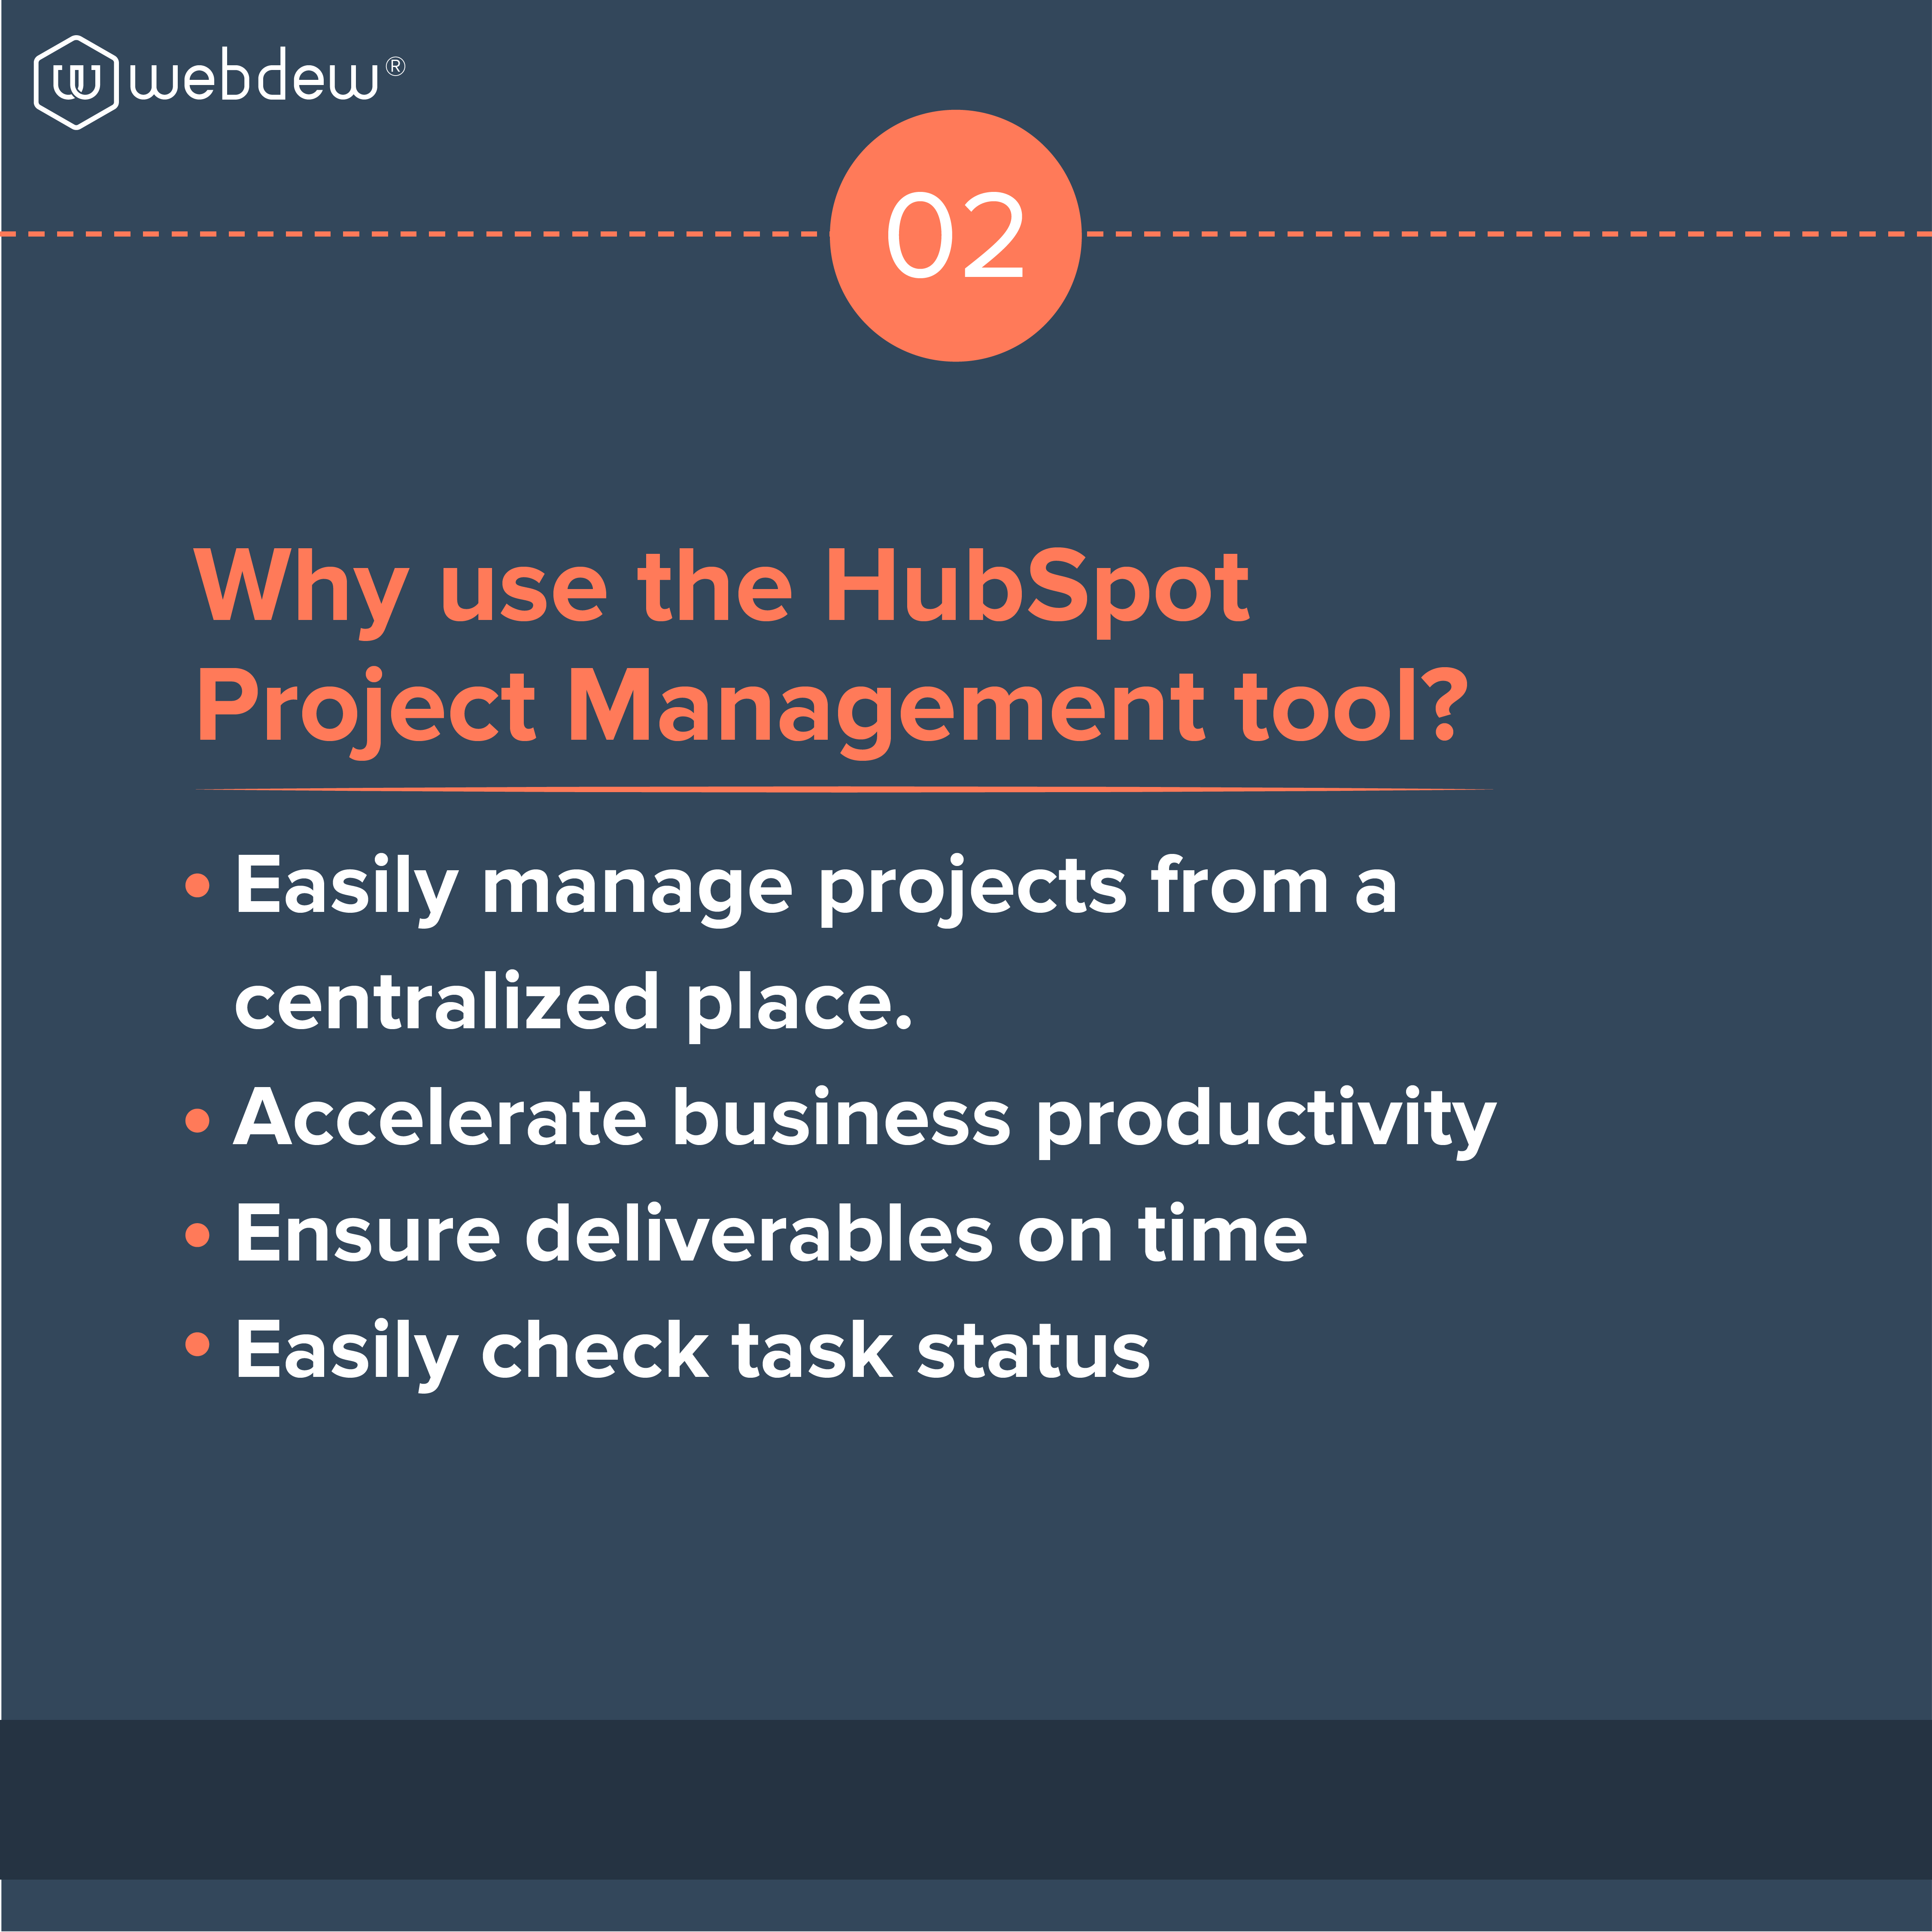 3. why use the hubspot project management tool